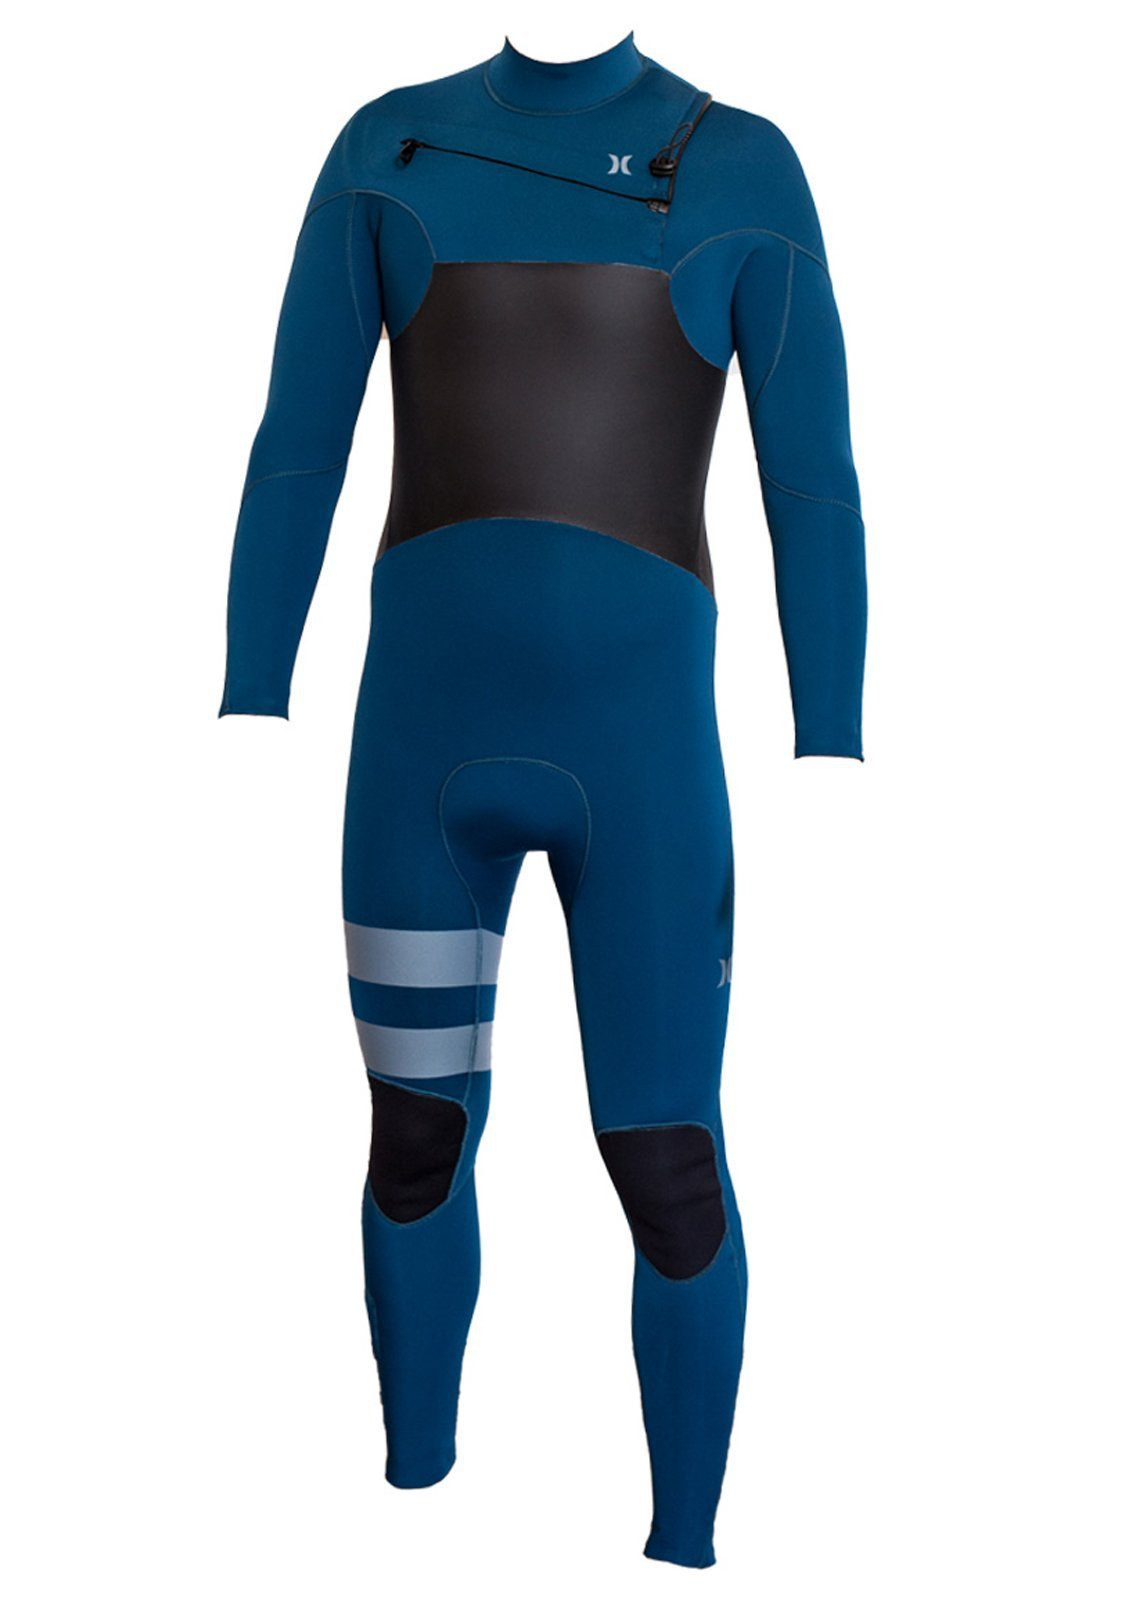 Hurley Men's Advantage Plus 4/3mm Chest Zip Fullsuit Wetsuit